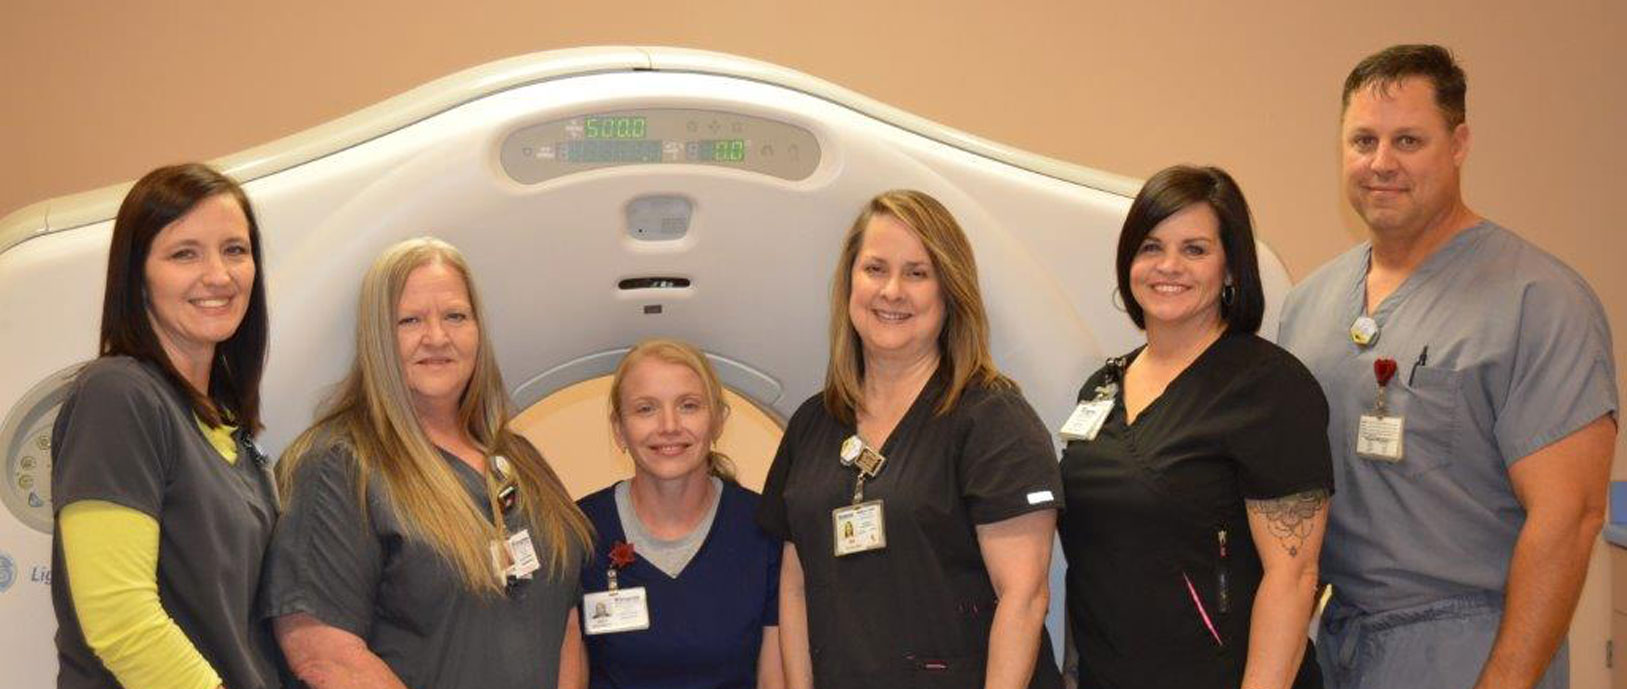 The Radiology staff in front of a ct machine